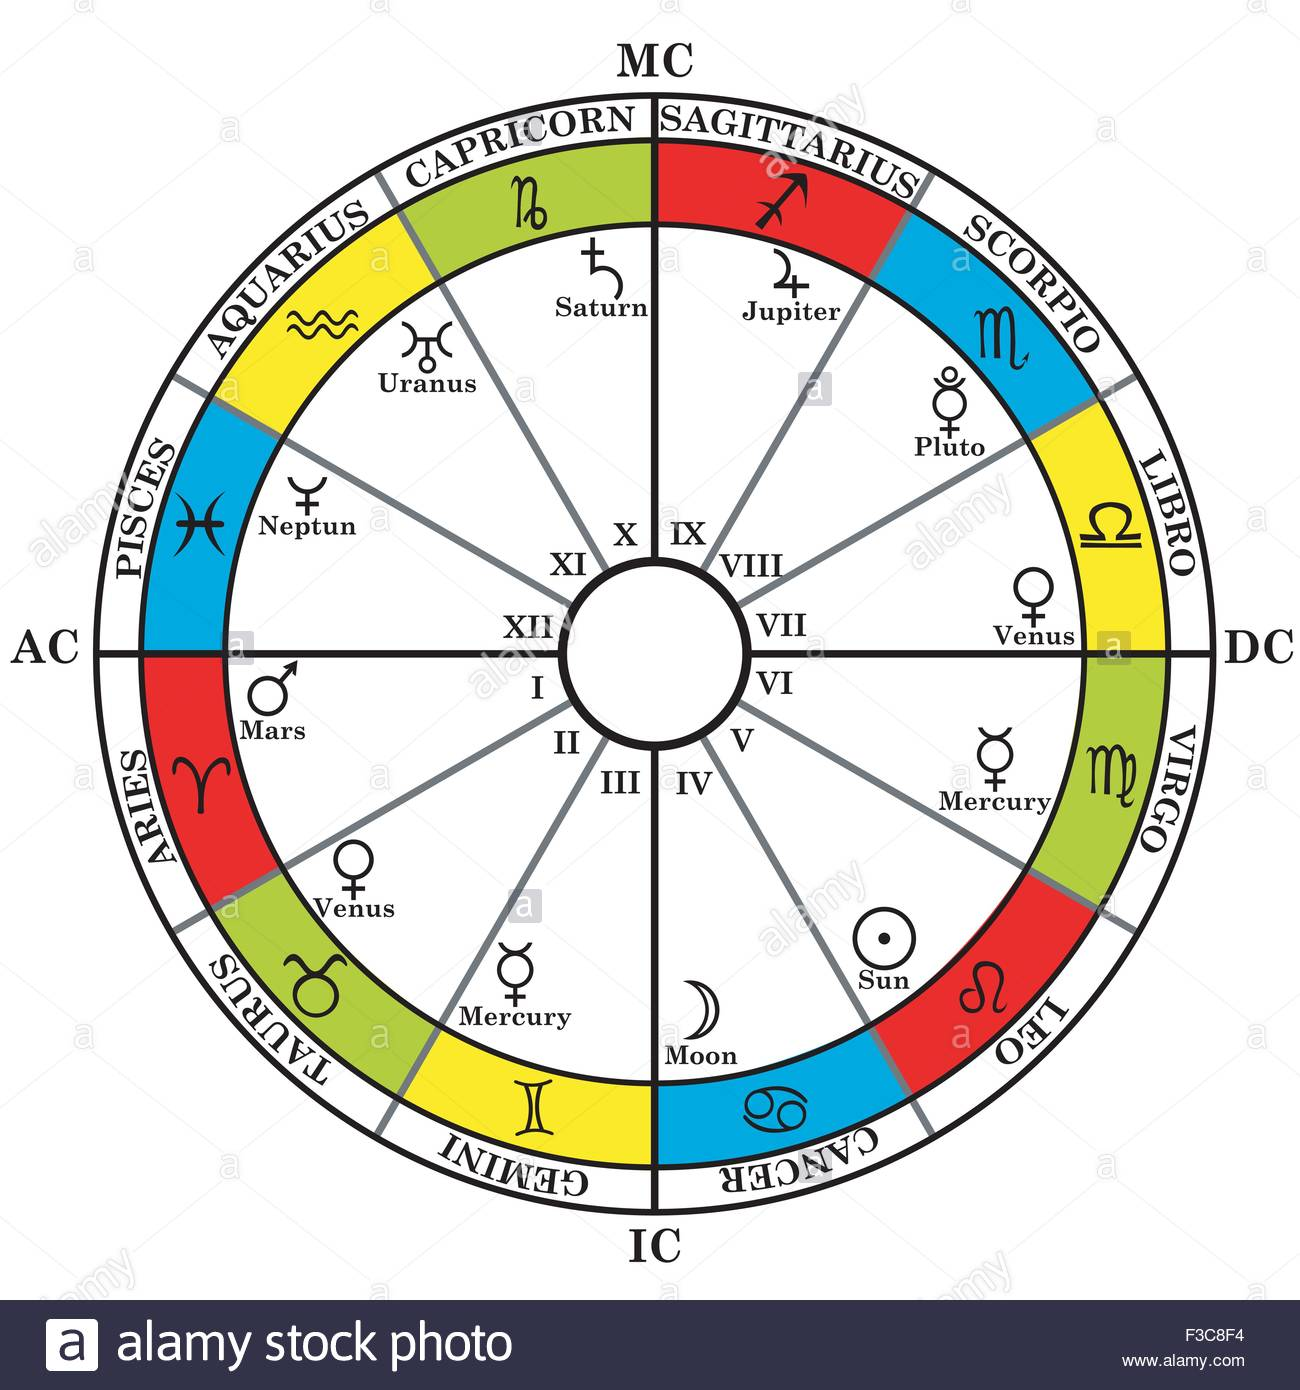 natal chat Free horoscopes: get your daily horoscope, love horoscope, weekly horoscope, monthly horoscope, love astrology, career astrology, and more horoscopes from a trusted source.